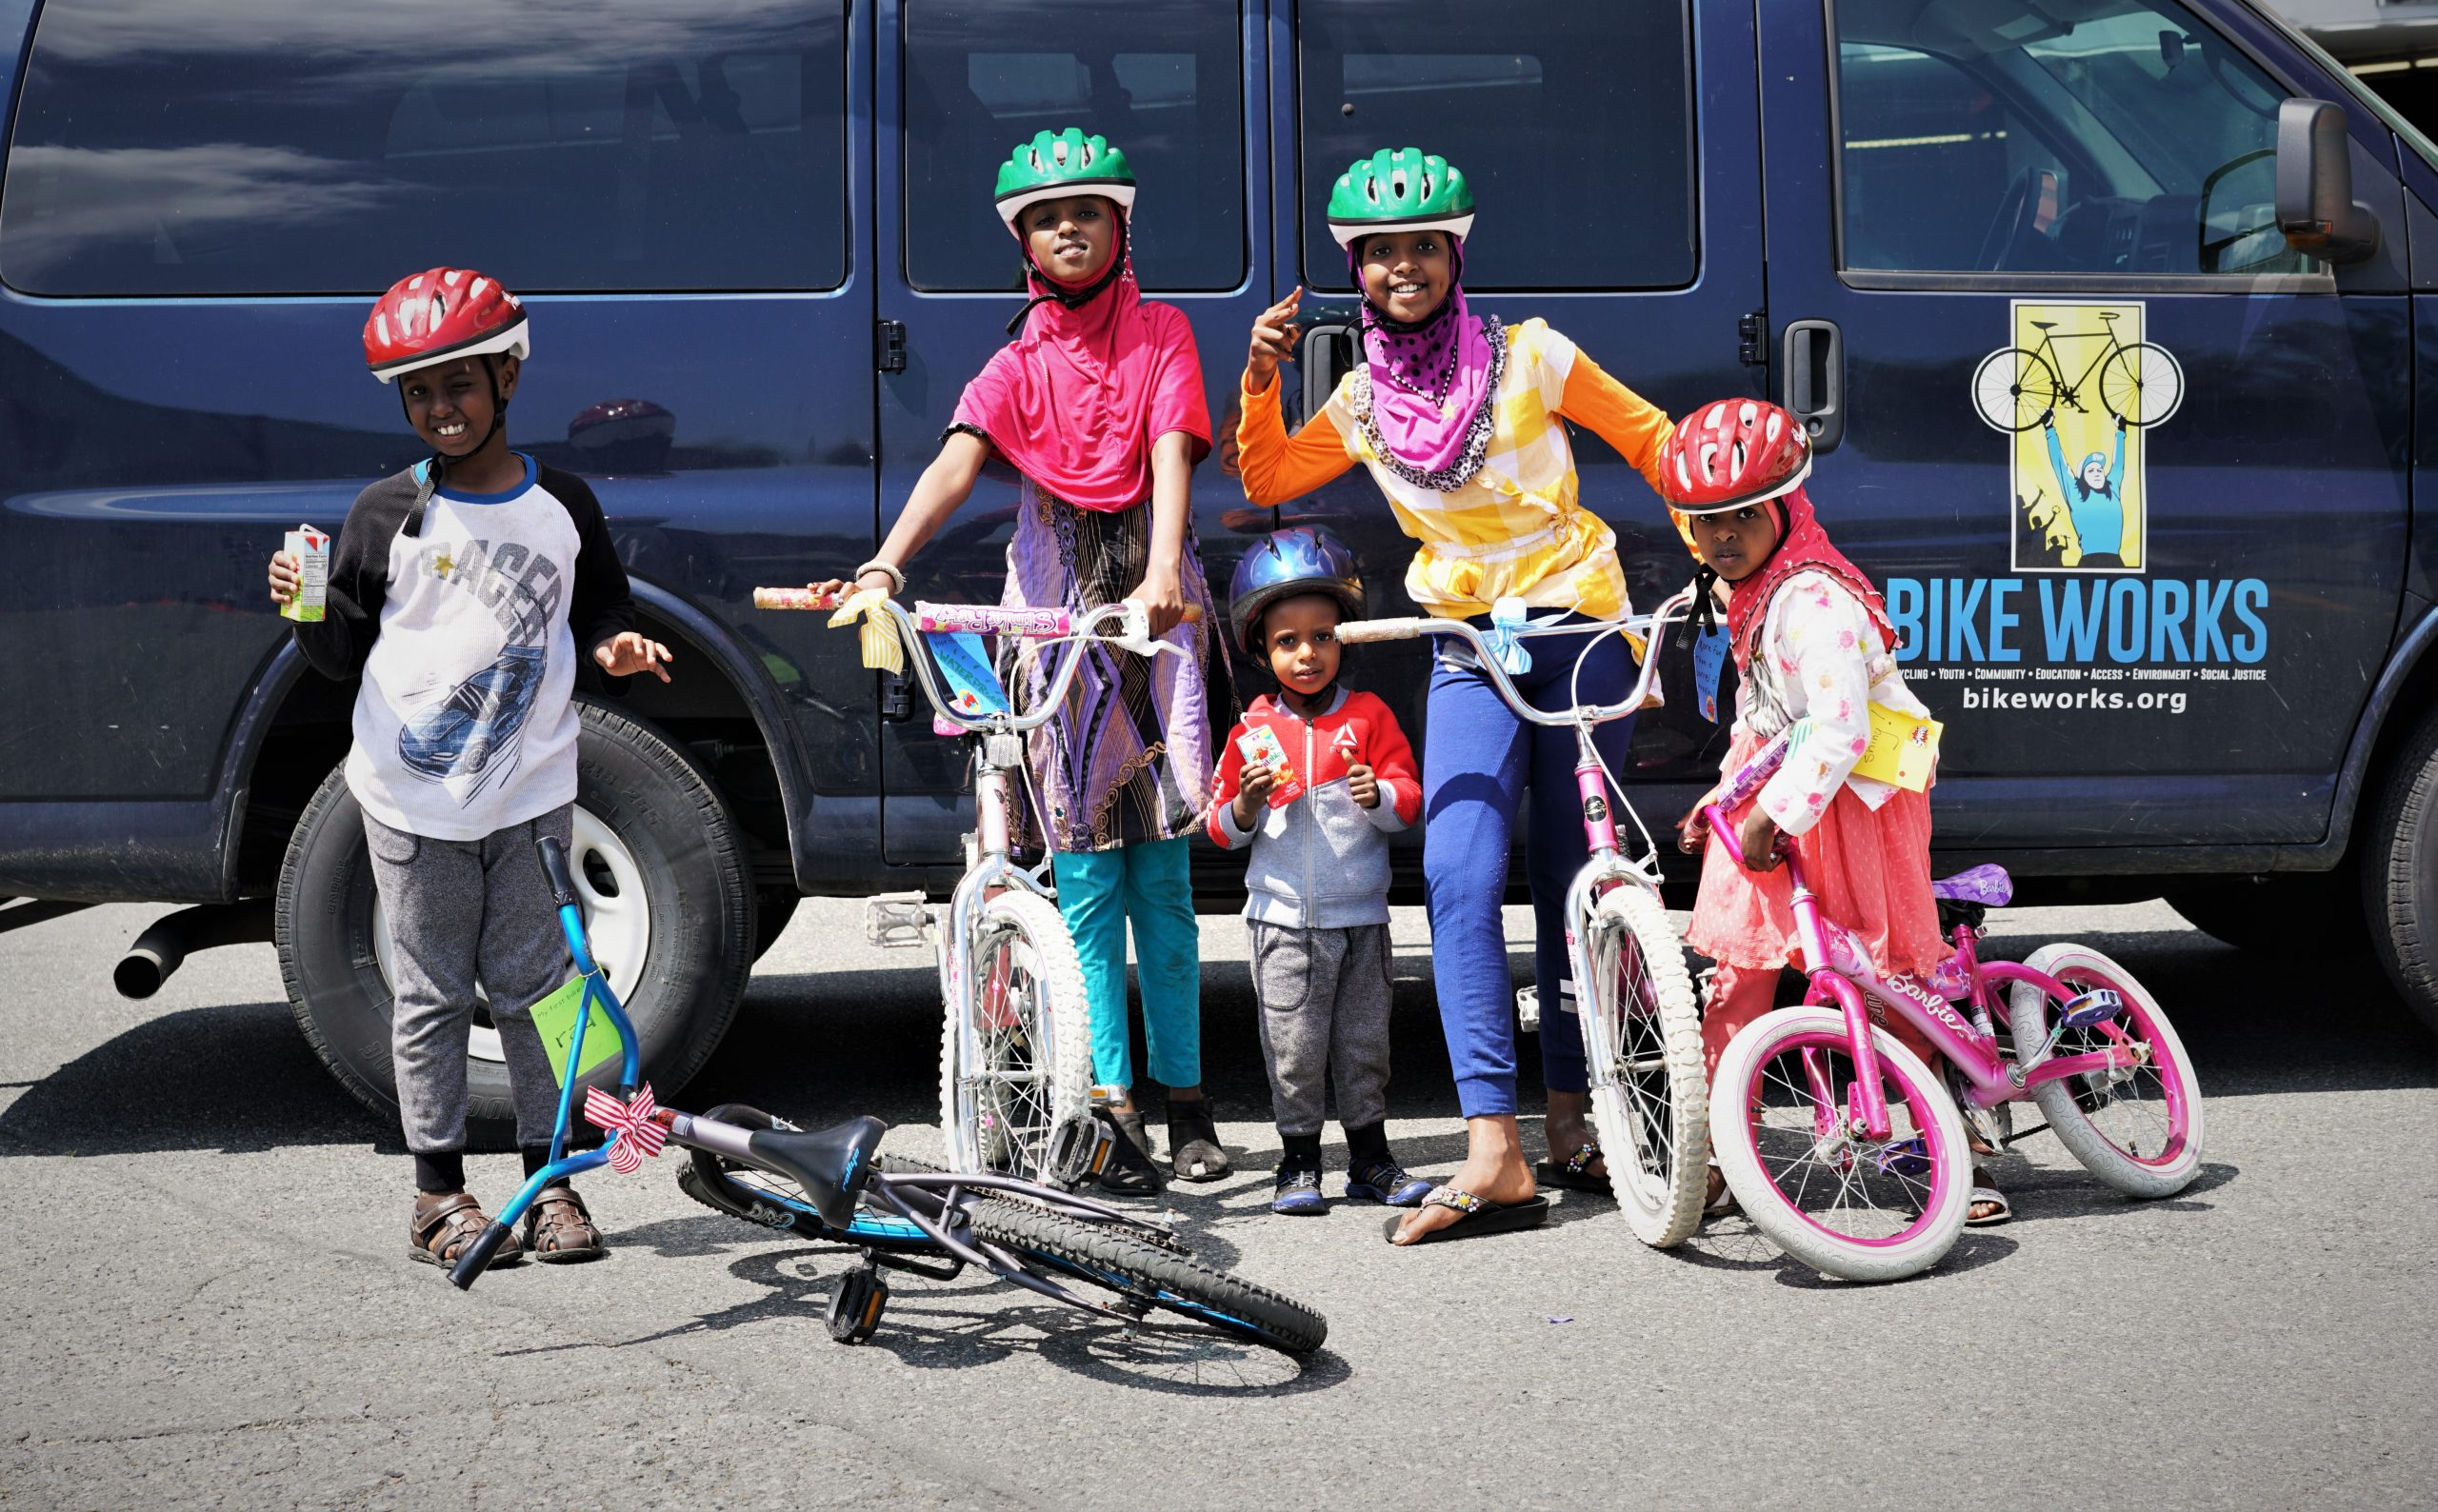 Five kids in bicycle helmets posing with bicycles in front of a navy blue Bike Works van.